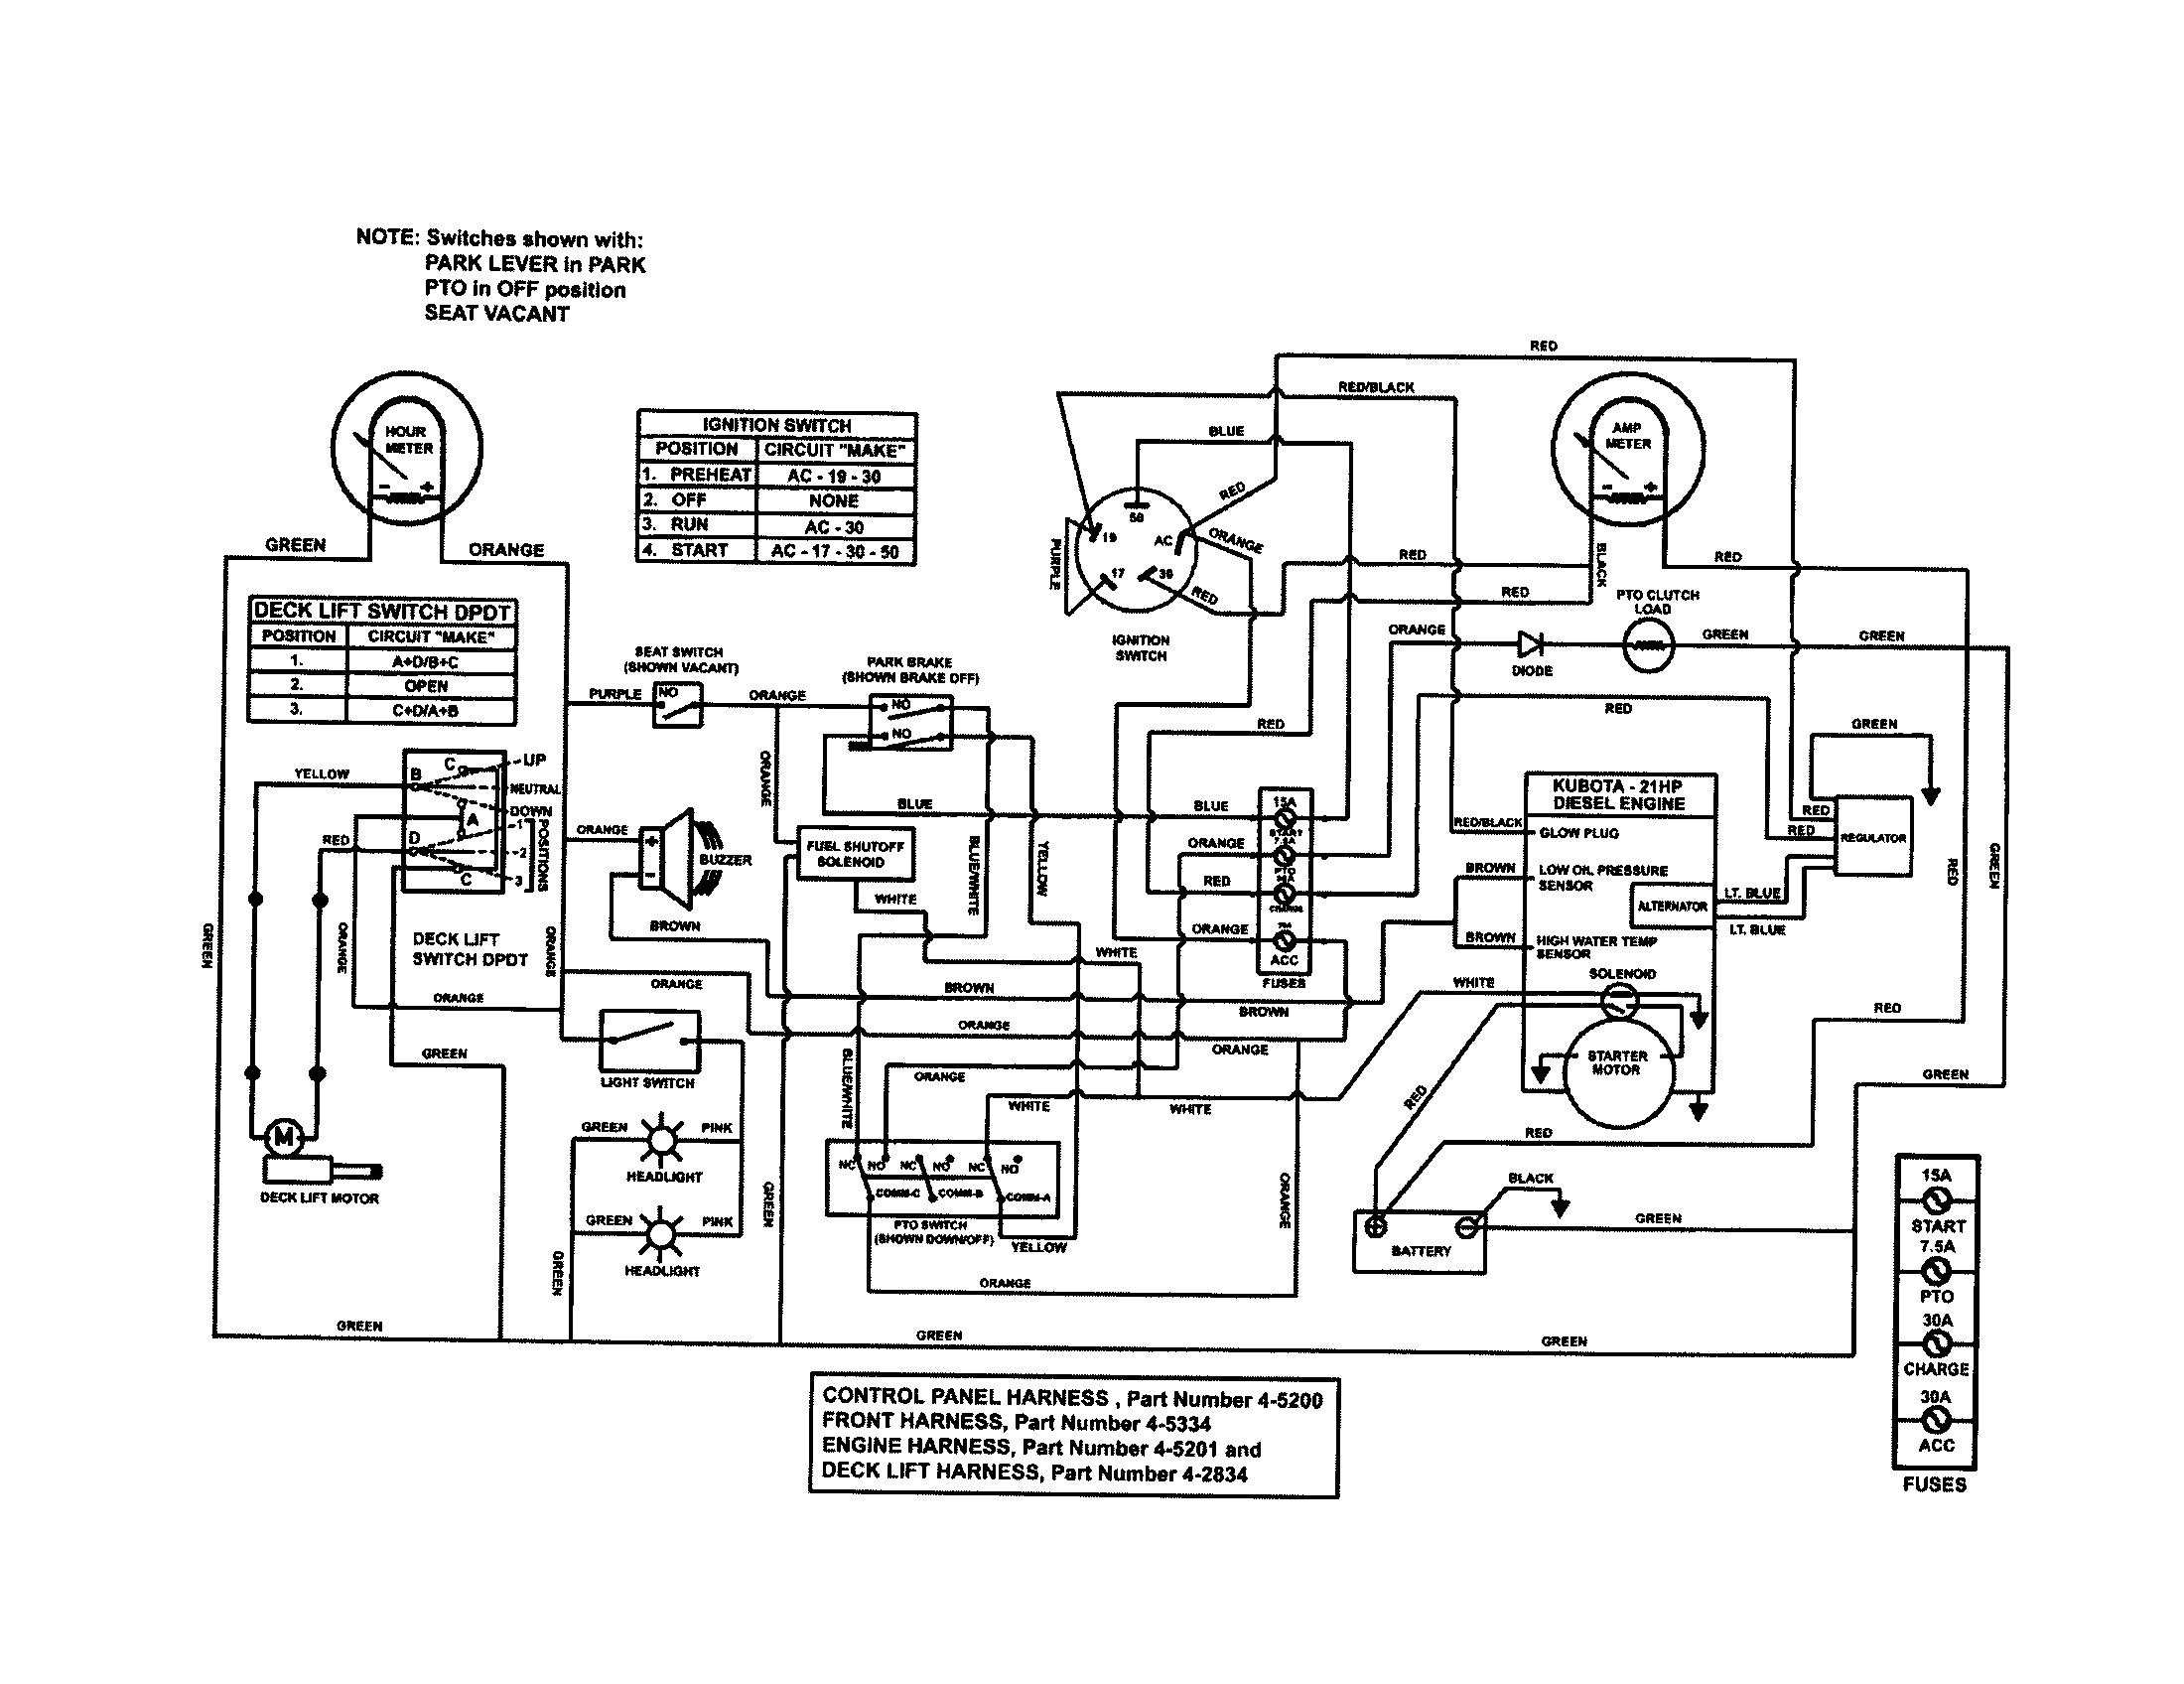 [SCHEMATICS_48IU]  Kubota Rtv 1140 Tractor Wiring Diagram - Passneger Side Fuse Box Nissan  Rogue for Wiring Diagram Schematics | Kubota Tractor Wiring Diagram |  | Wiring Diagram Schematics